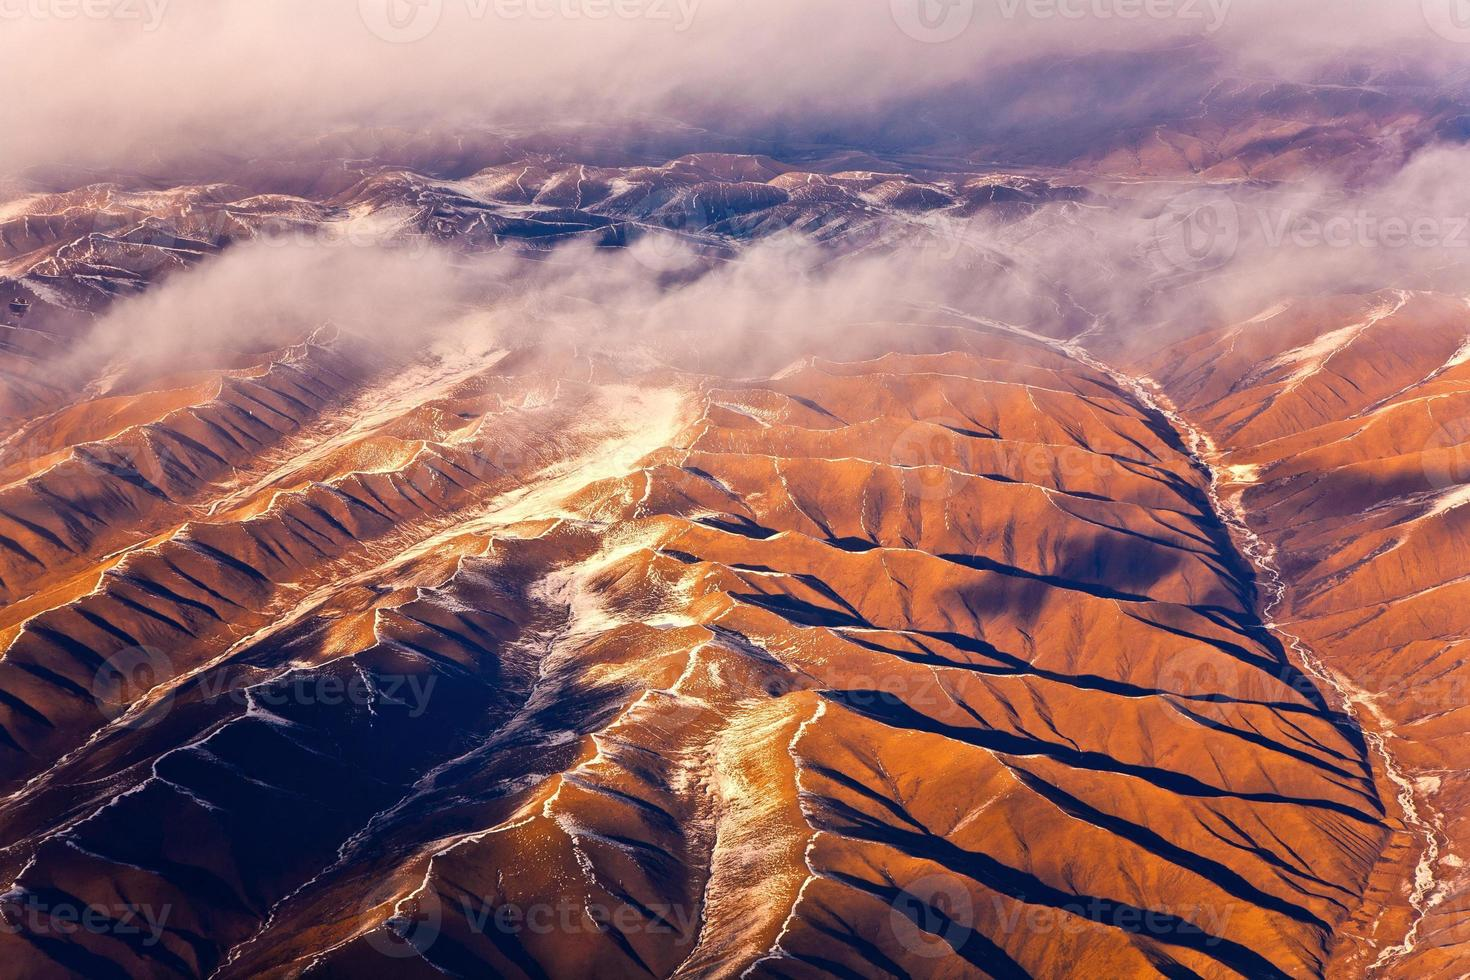 view from the aircraft to the mountains of the Himalaya photo